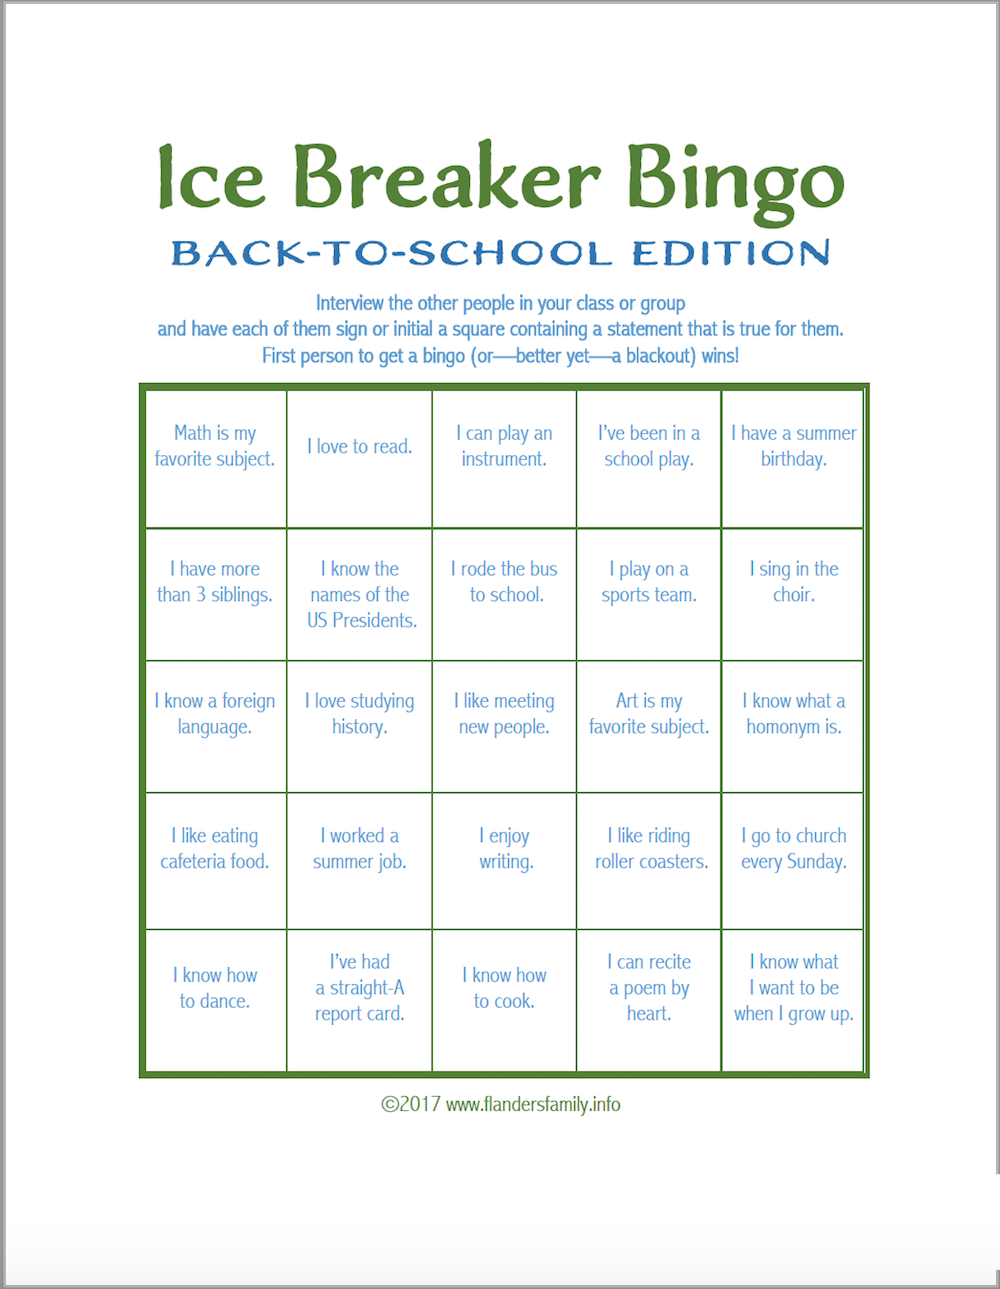 Free printable Ice Breaker Bingo: Back-to-School Version of the beloved classic